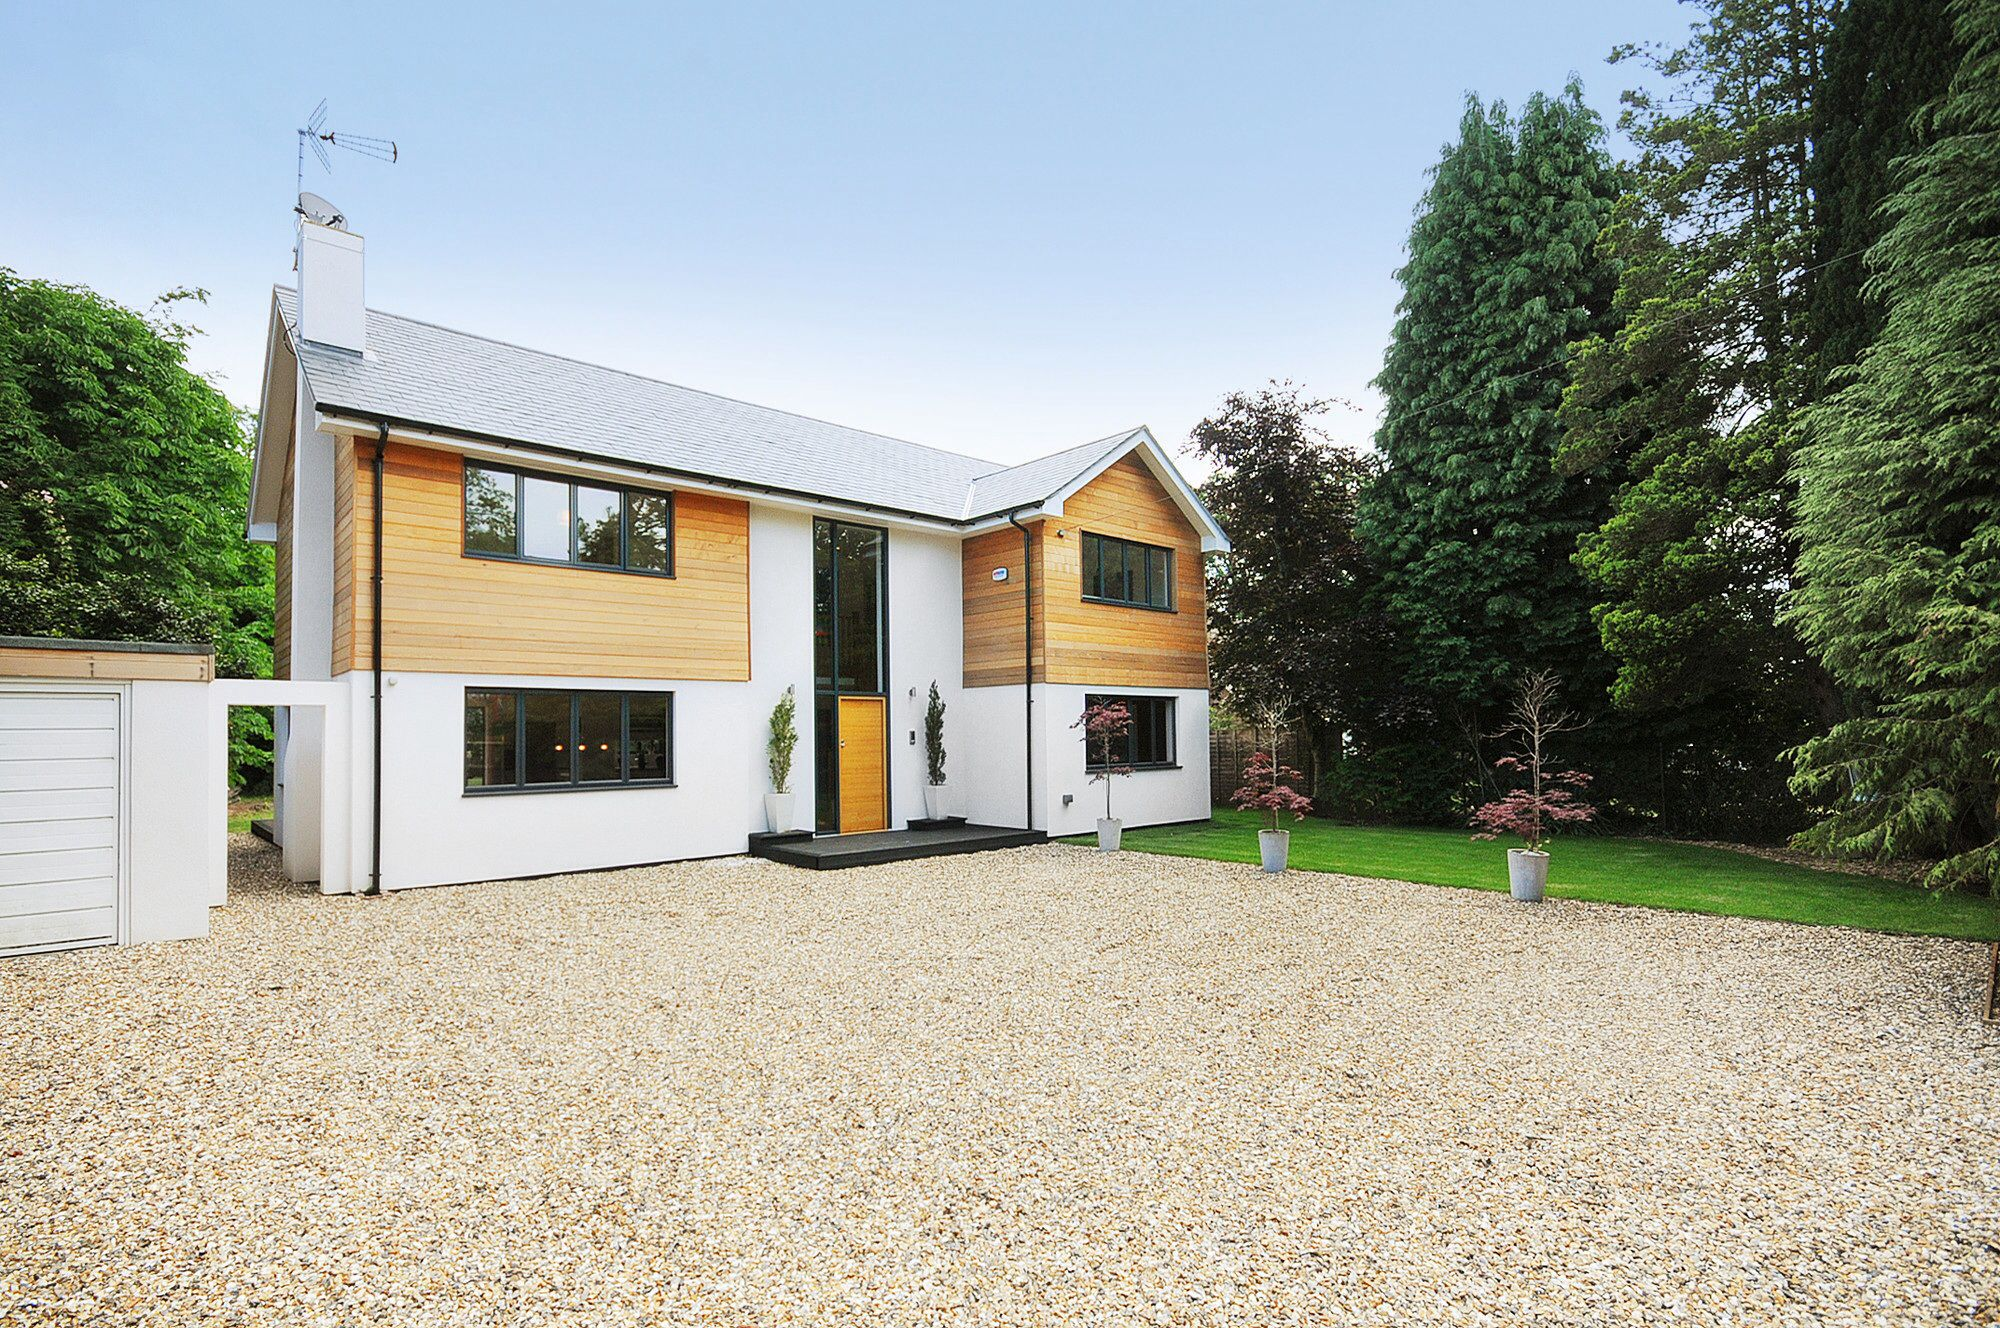 Bungalow to house conversion in Fleet, Hampshire   Home improvement ...